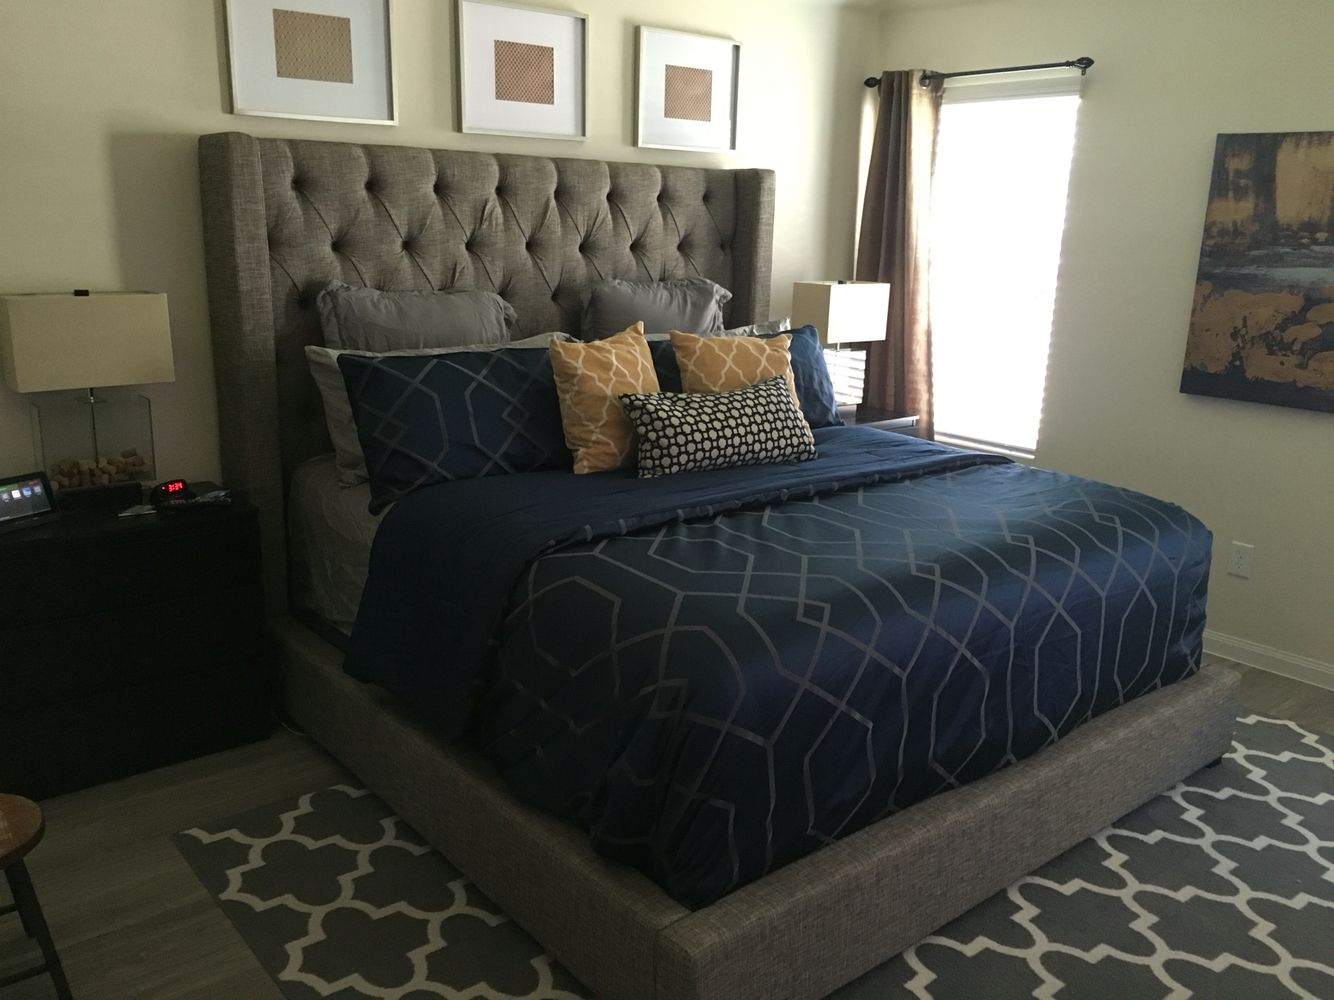 Hotel inspired bedroom suite sorinella bed ashley furniture malm side drawers ikea for Ashley furniture bedroom suites